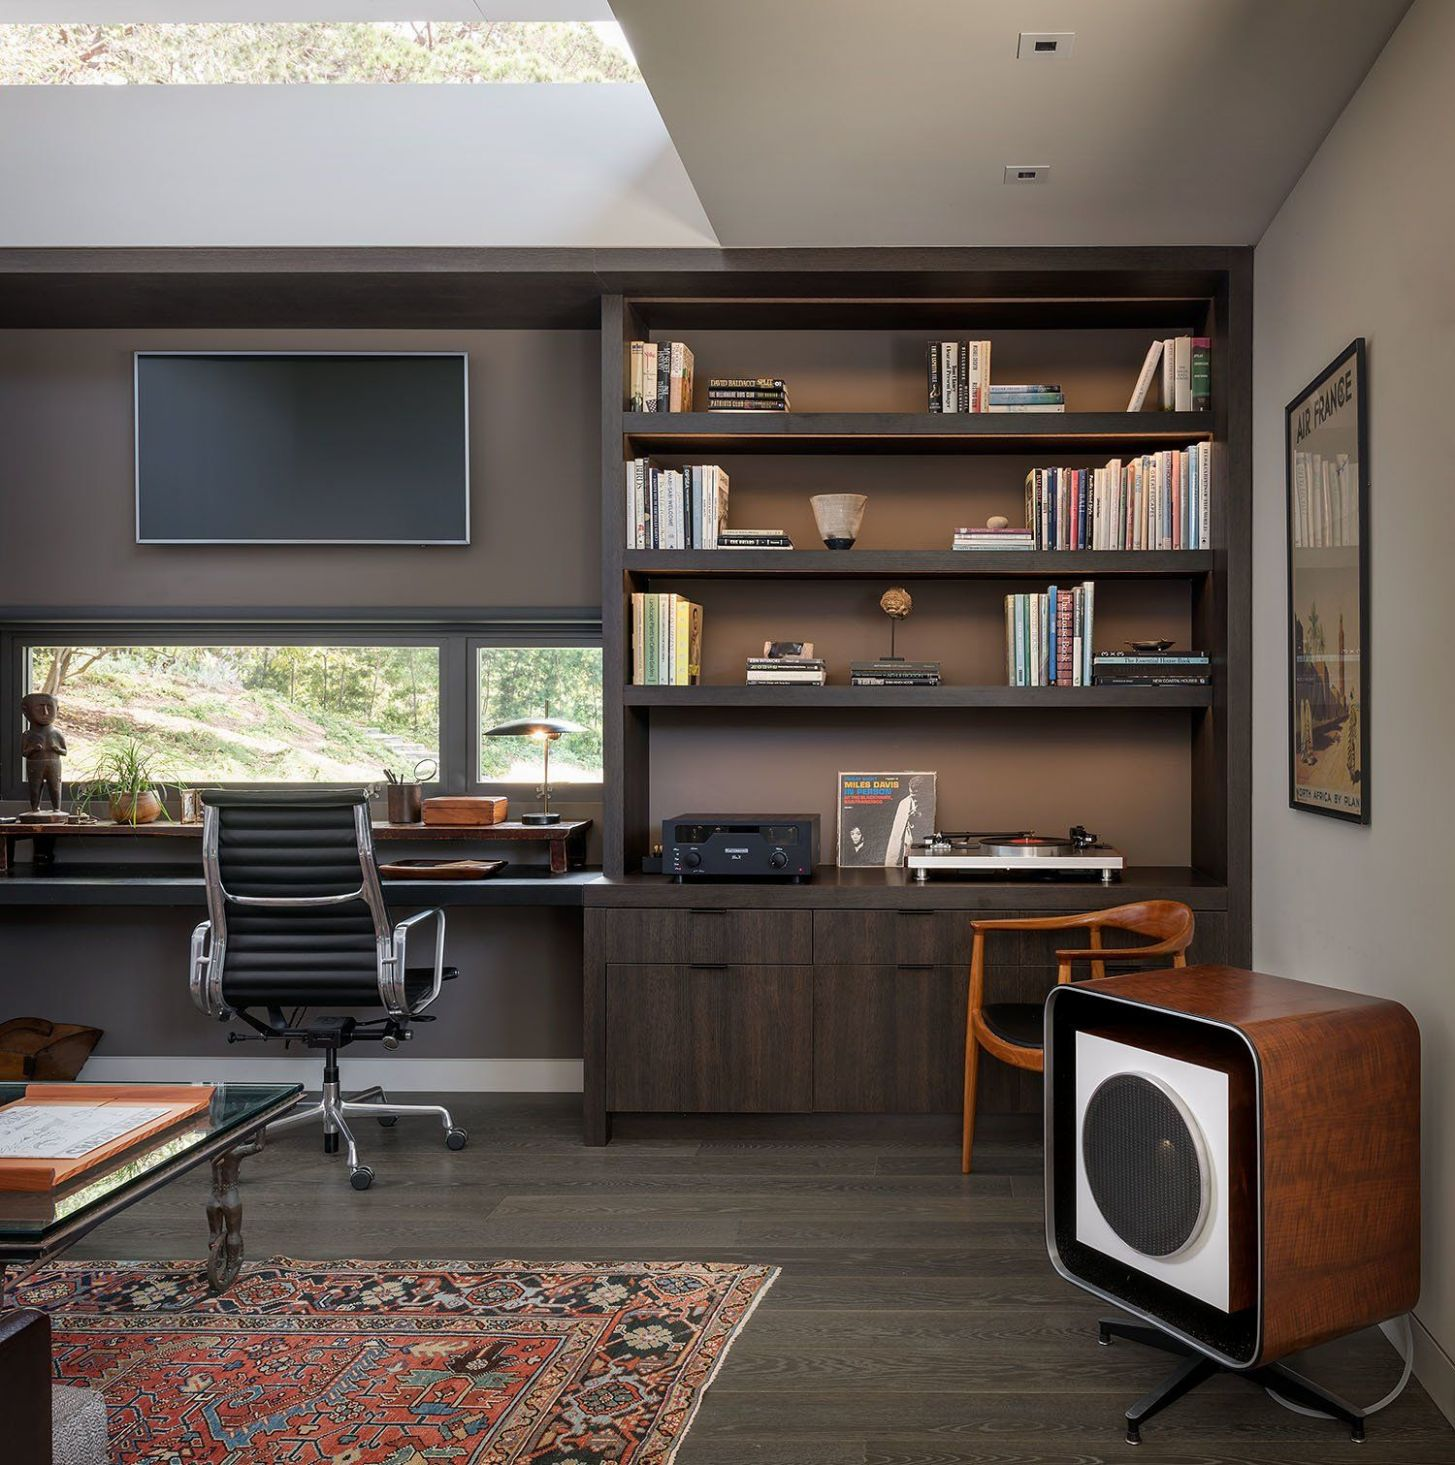 9 Home Office Designs & Decorating Ideas (With images) | Home ...